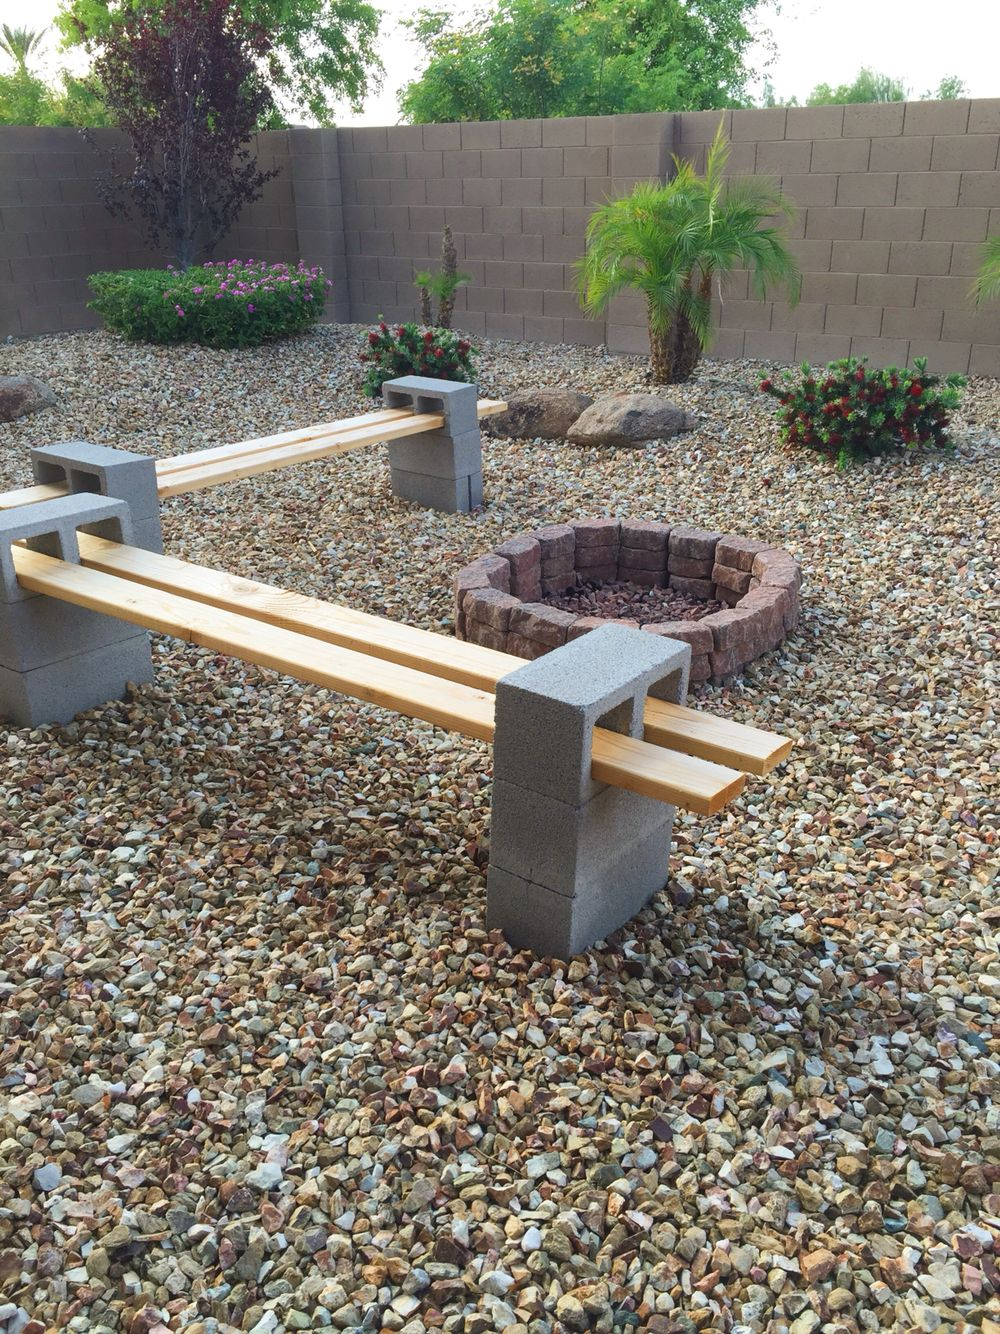 Diy Benches And Fire Pit Cinder Block Garden Backyard Diy Projects Cozy Backyard